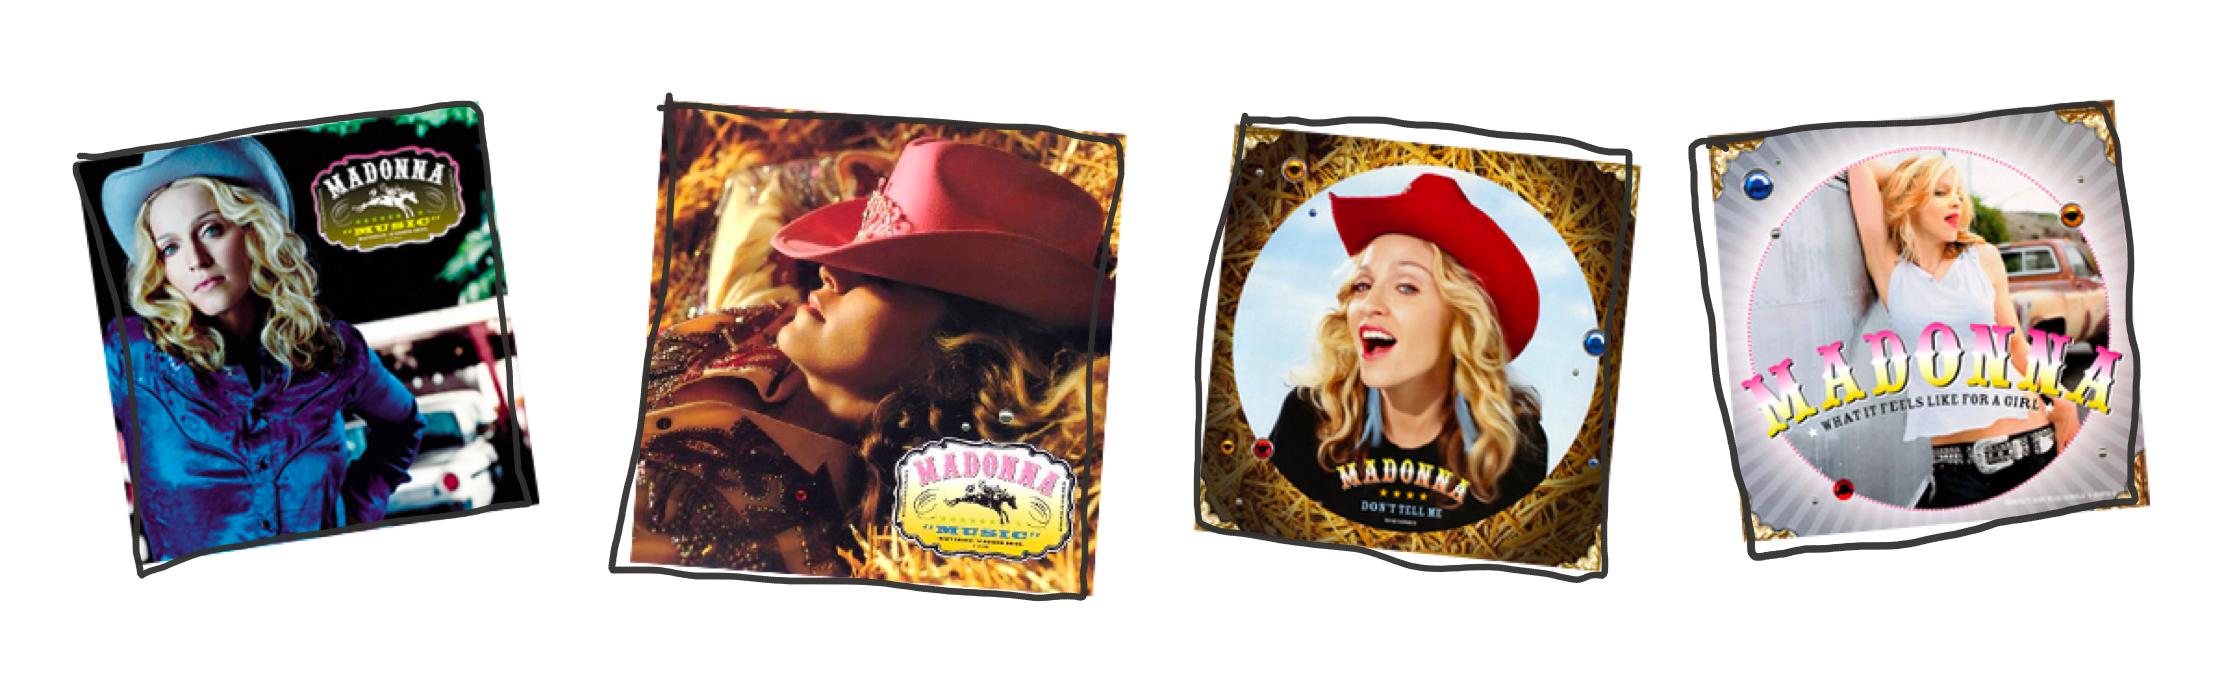 madonna-campaign-outlines.png